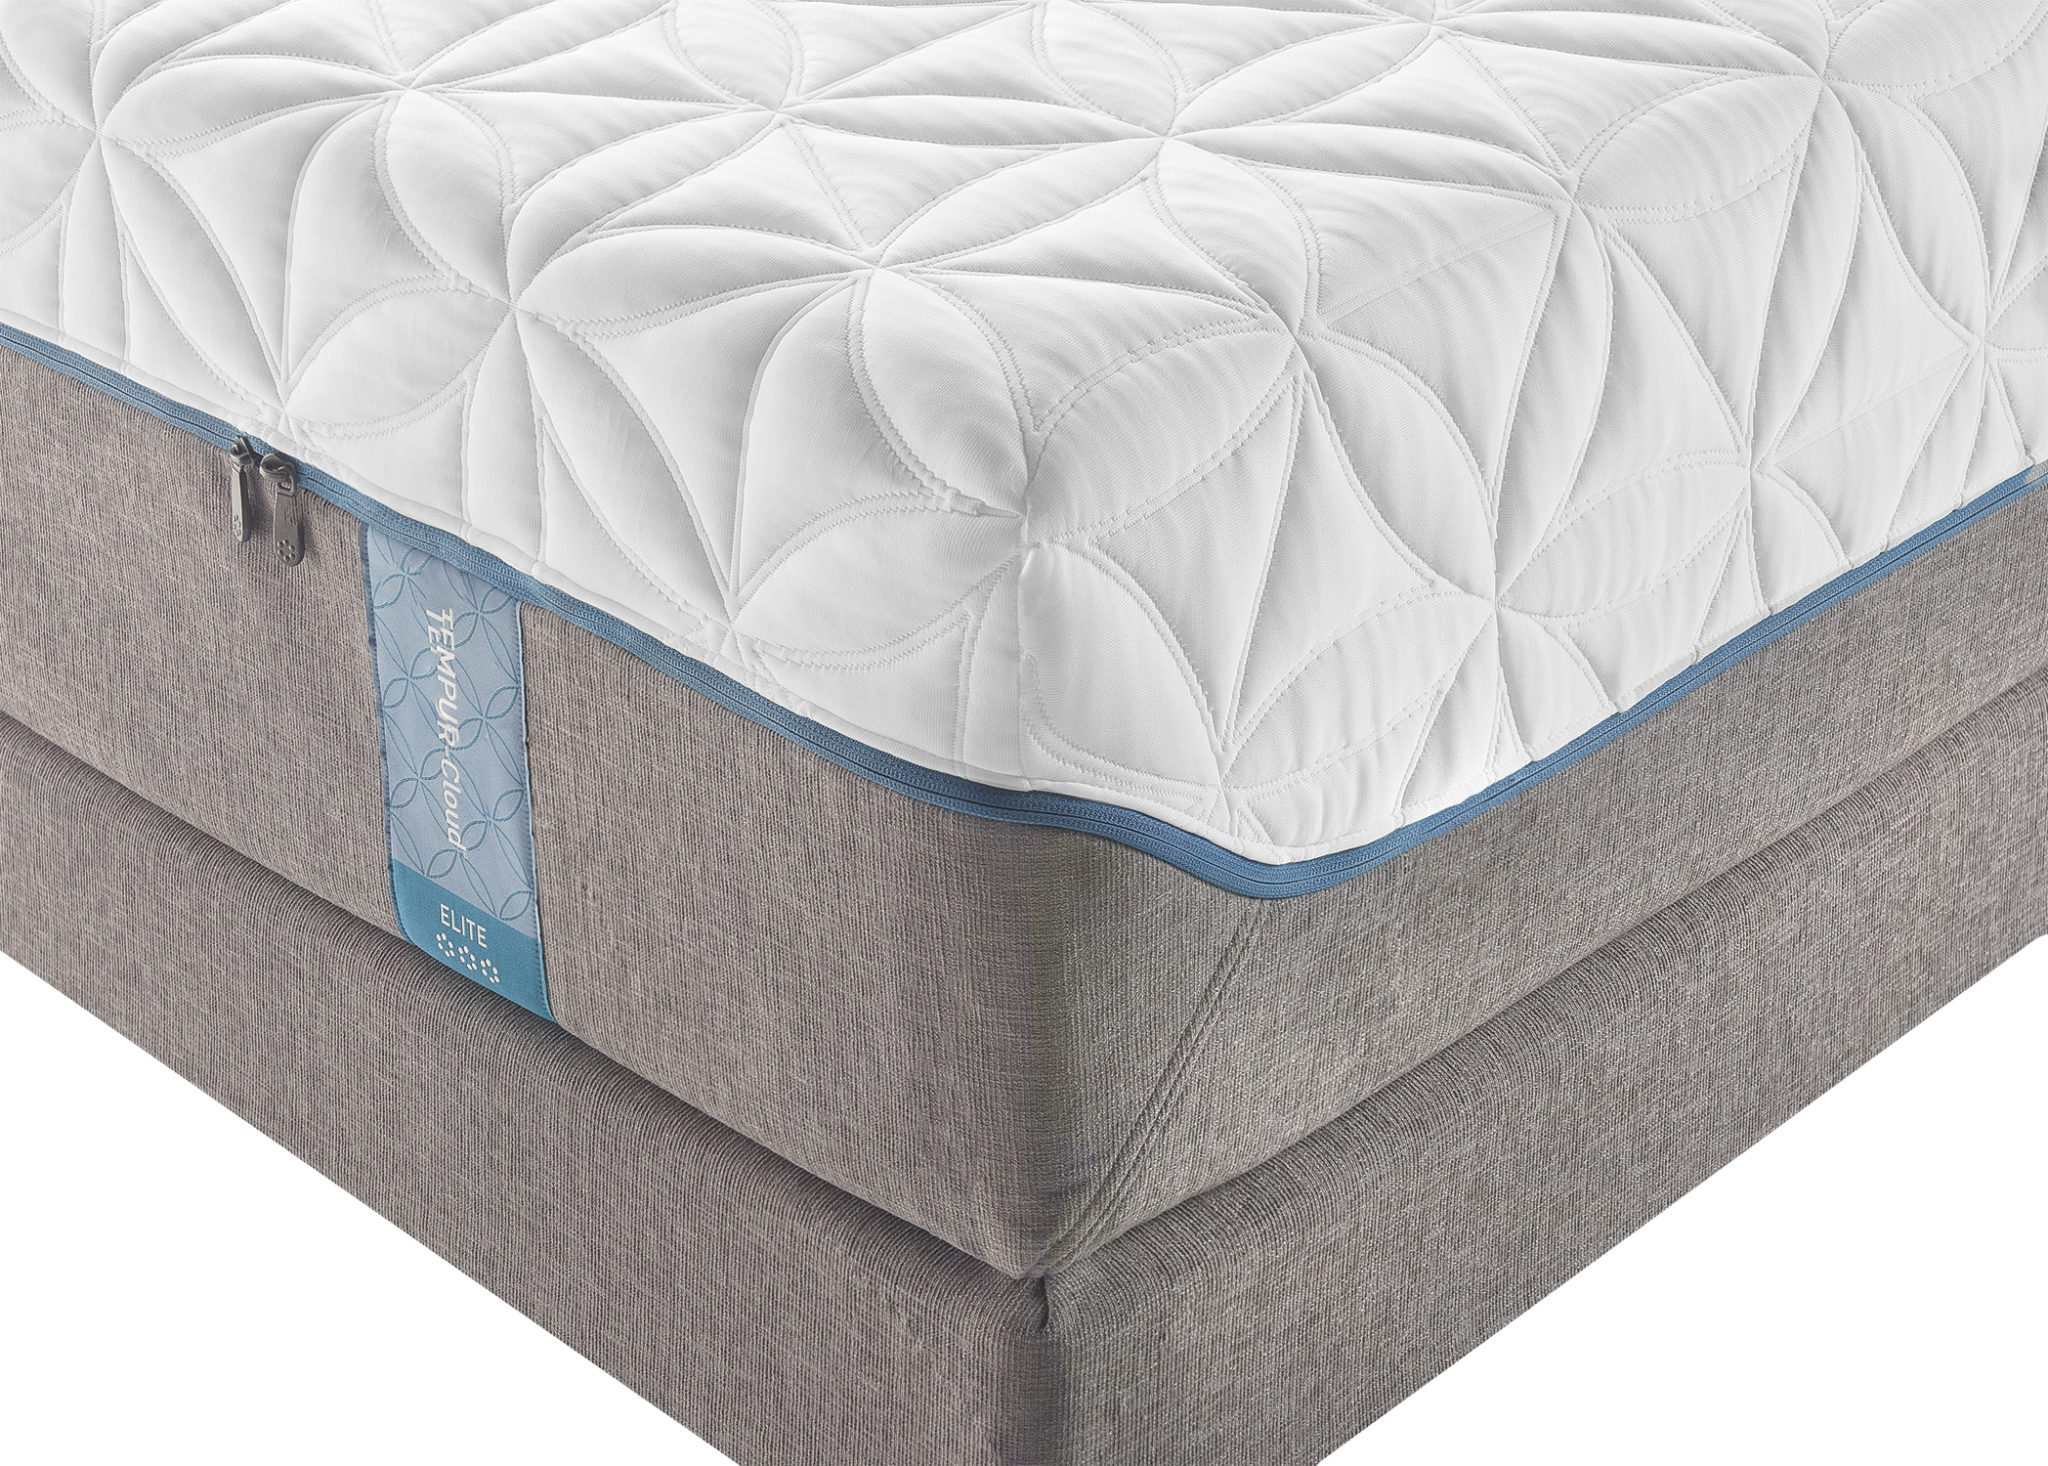 Tempur Pedic Mattresses Beautyrest Mattresses Amp More